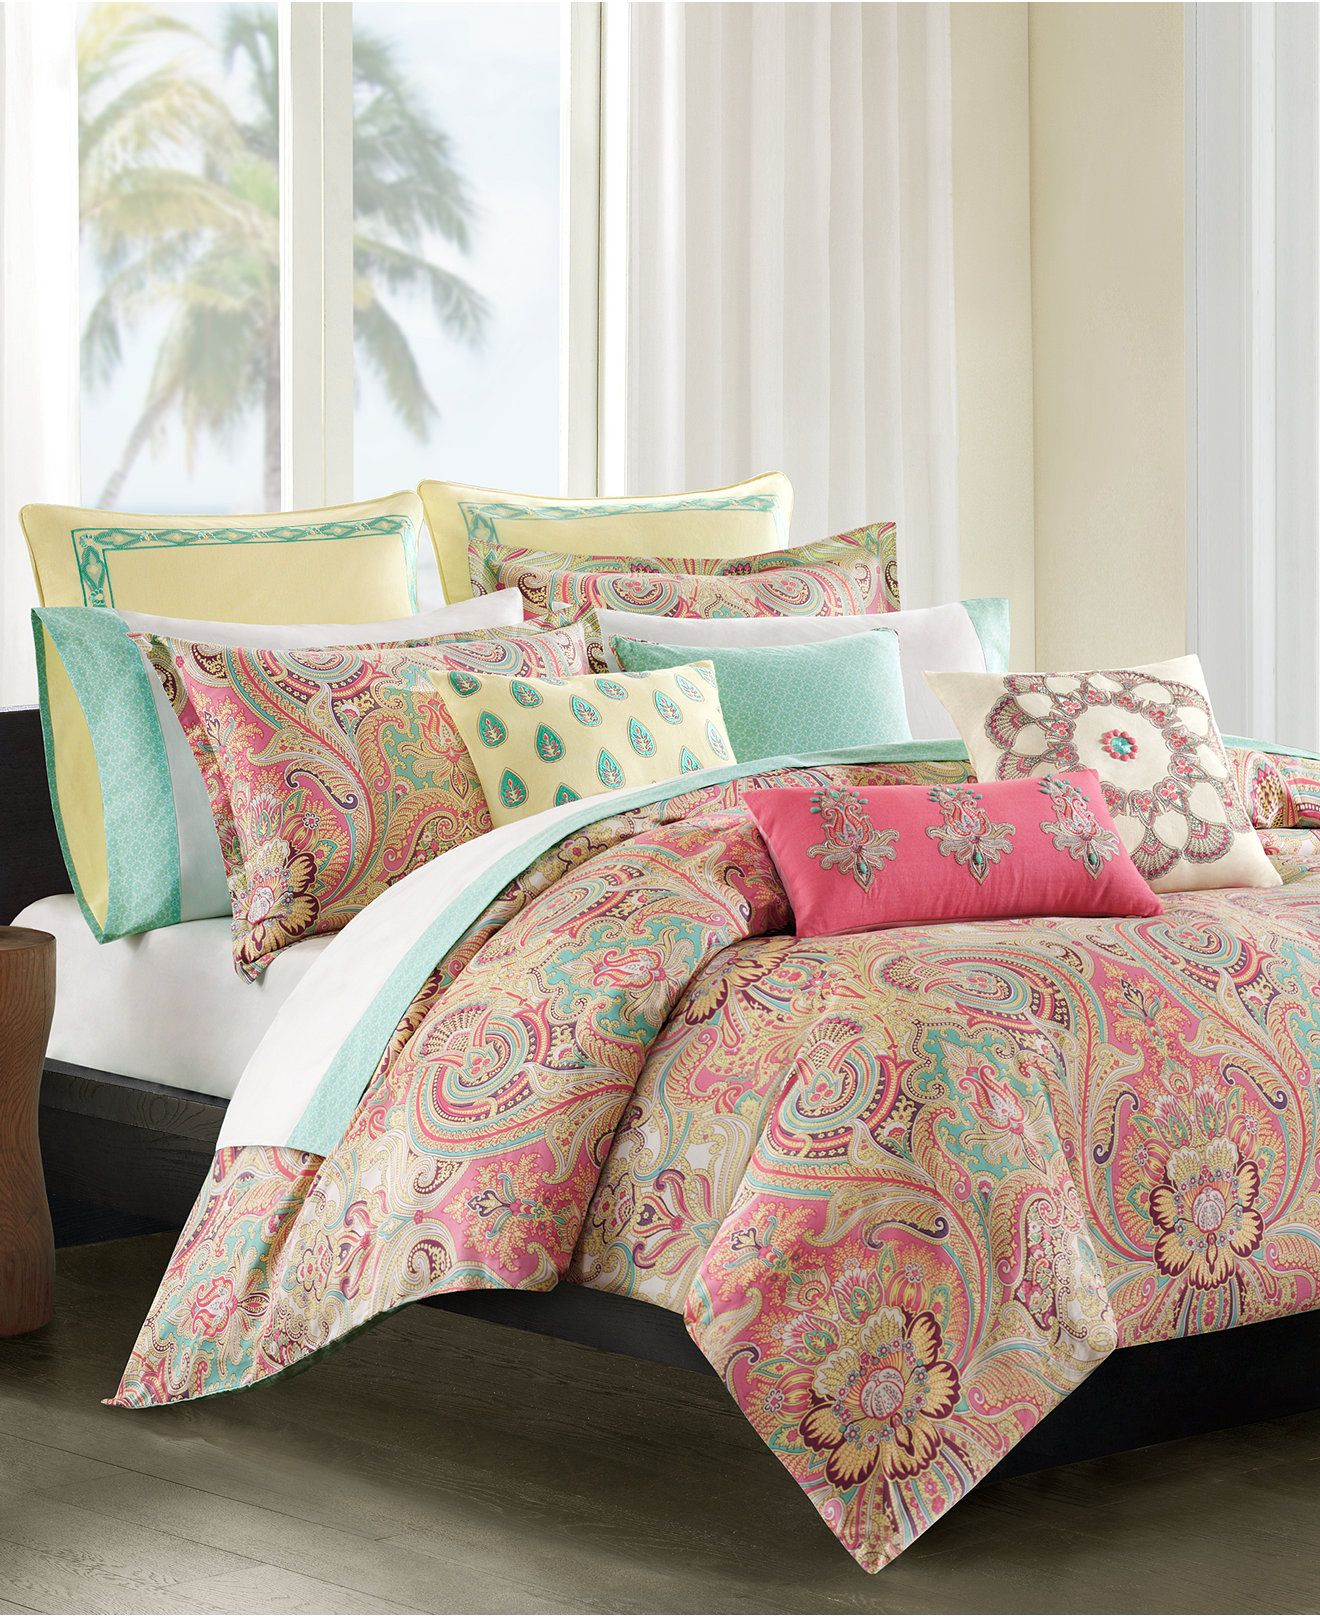 Echo Guinevere Twin Sheet Set - Bedding Collections - Bed ...